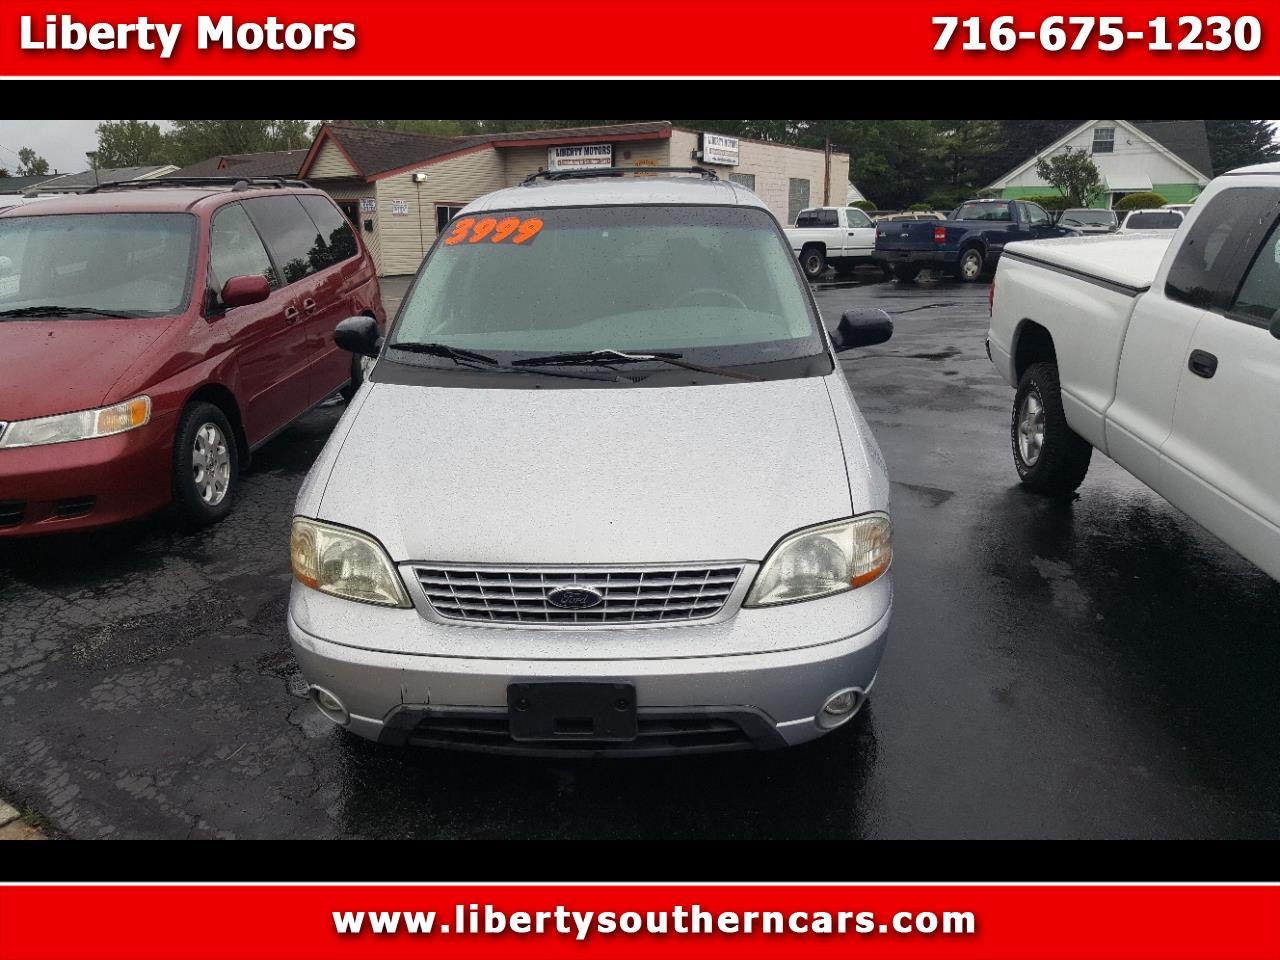 Ford Windstar LX Deluxe 2003